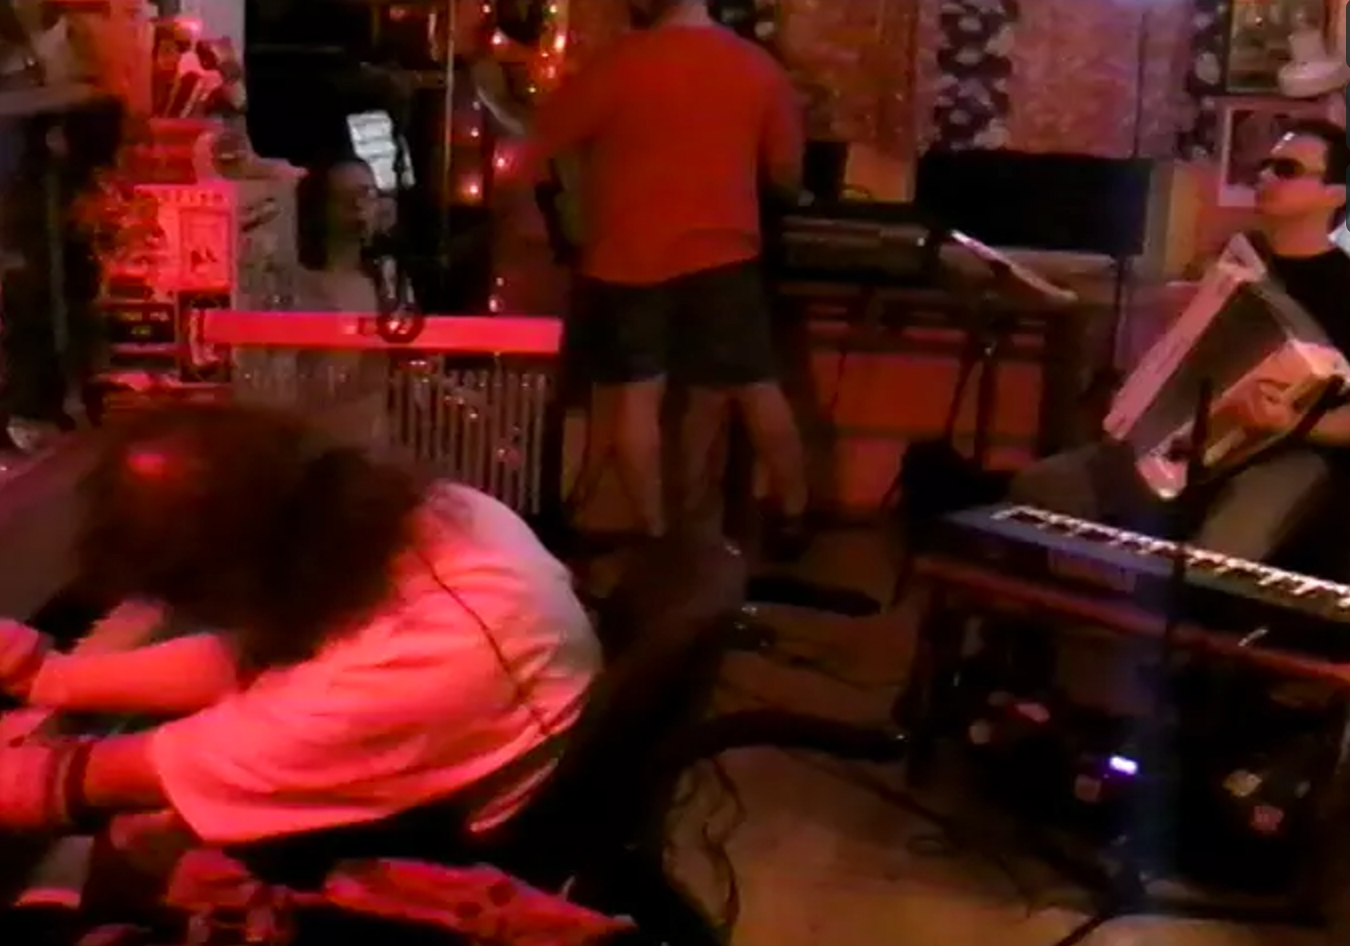 Frank Moore Live at Frank Moore's Shaman's Den on 2007-05-06 : Free